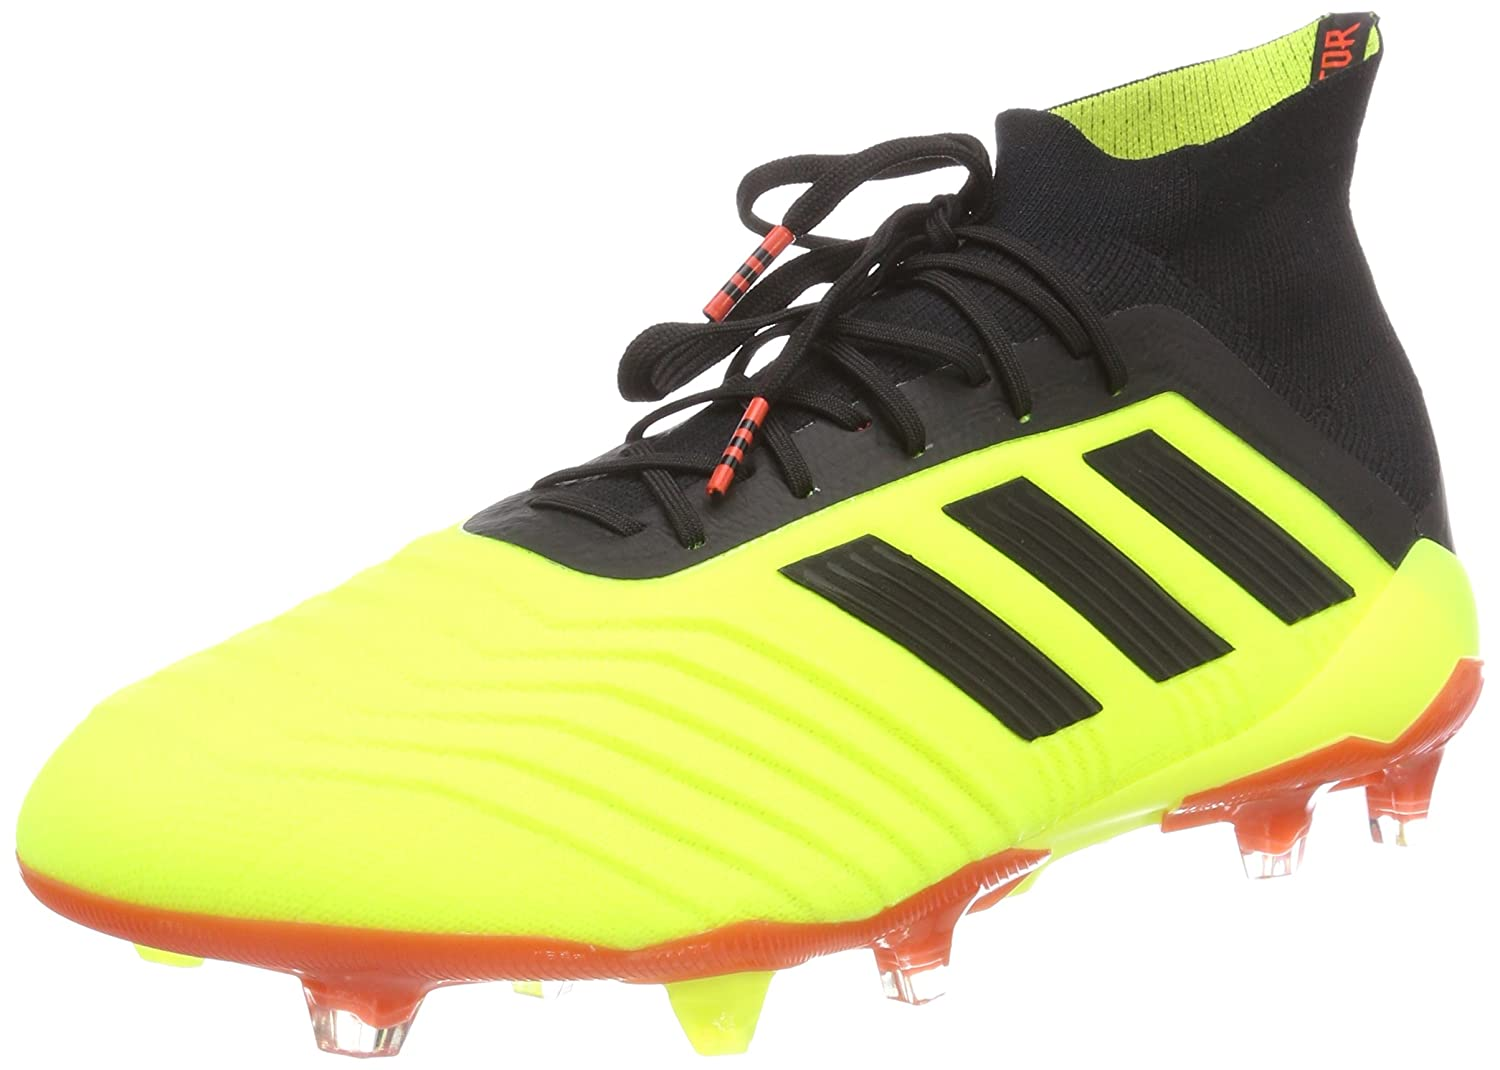 4d1f1d63c543 Amazon.com  adidas Predator 18.1 Firm Ground Mens Football Boots -  Yellow-10  Sports   Outdoors